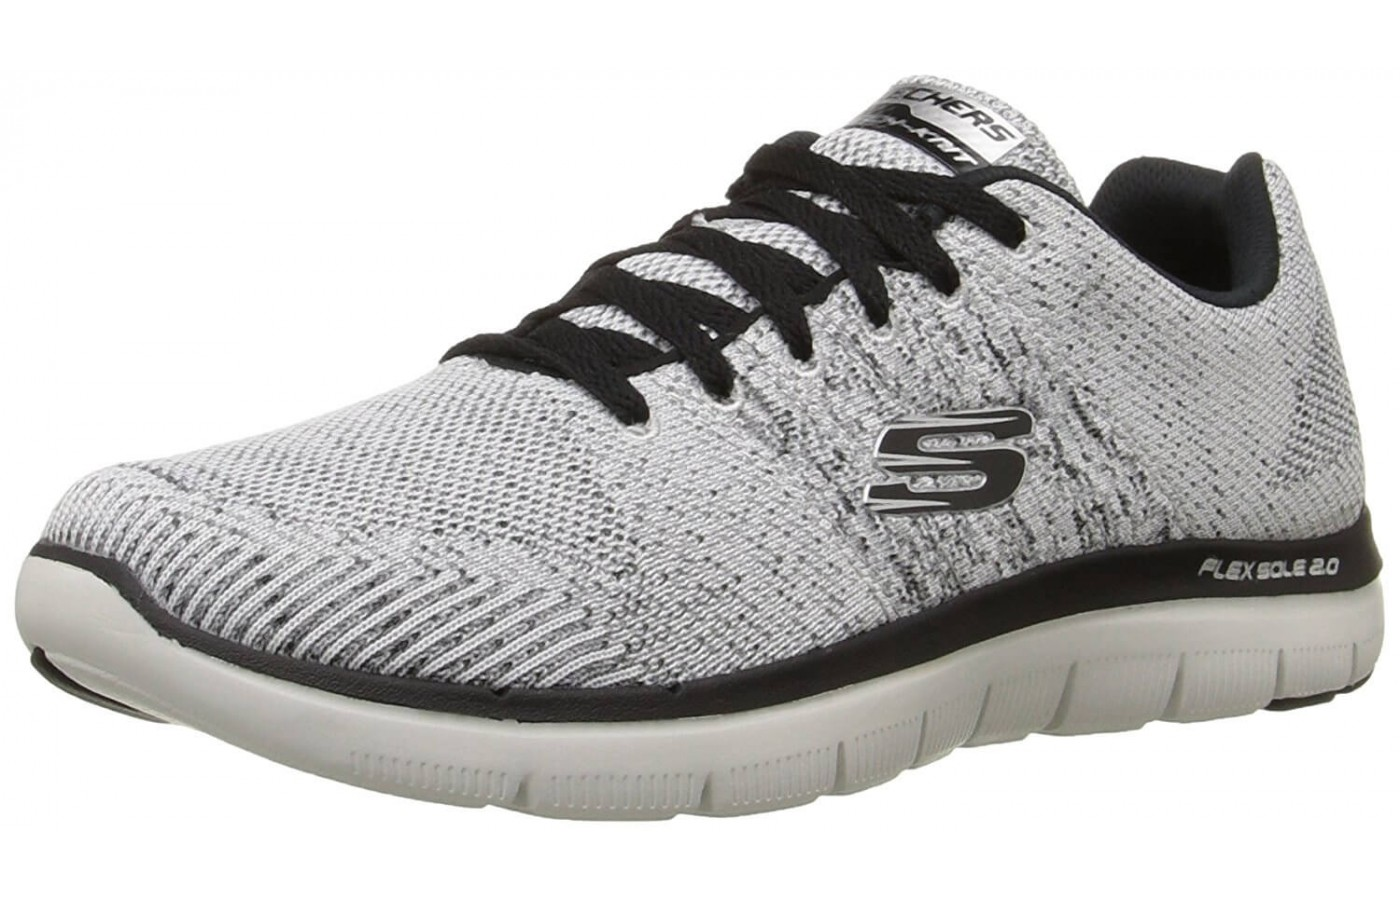 Advantage 0 Skechers Buy 2 Flex Or Not To Apr 2019 In 0wPnO8XNkZ